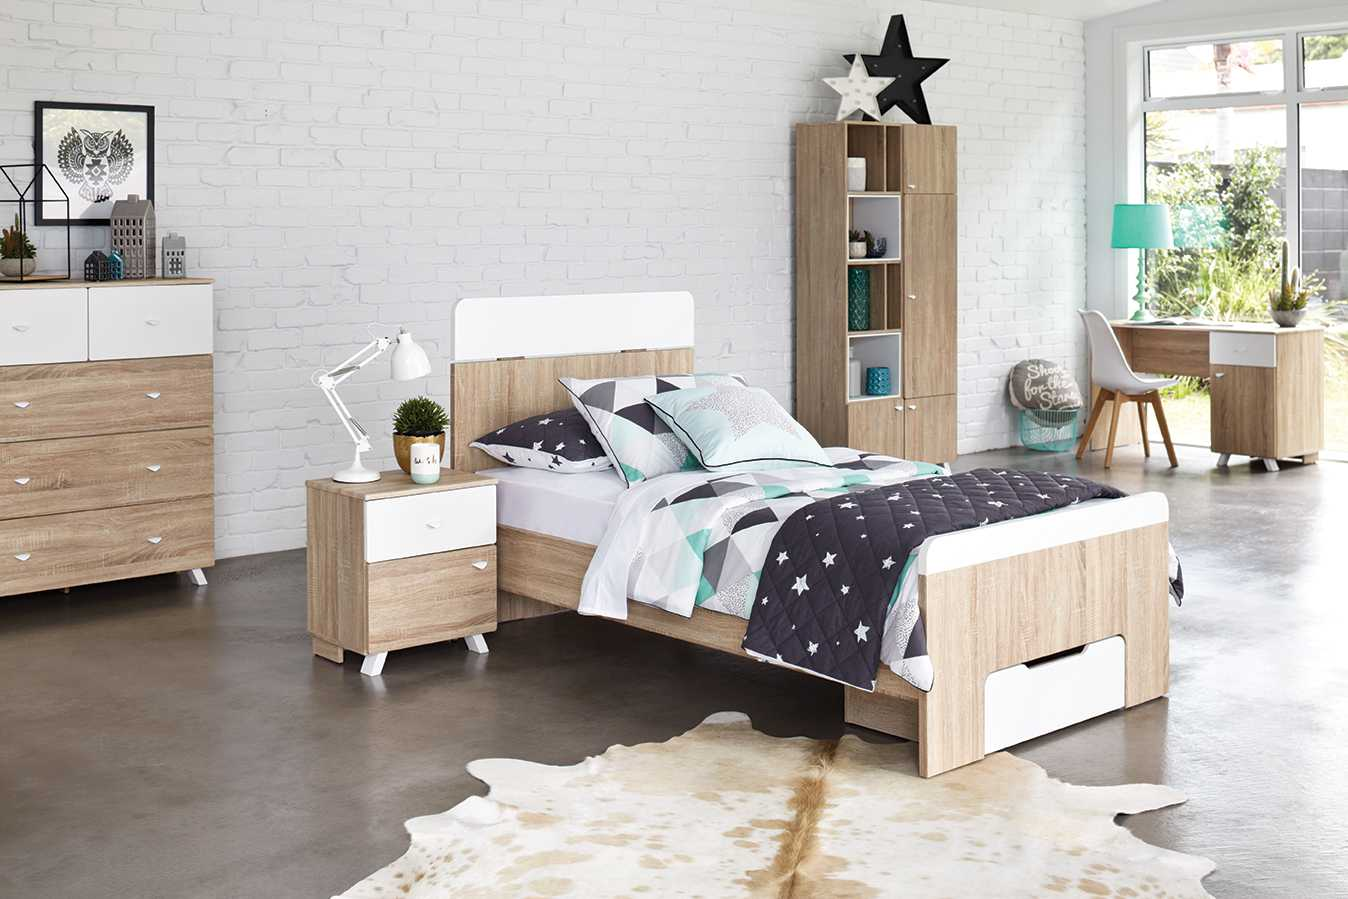 Queen Bedroom Furniture Sets Under 500 Bedroom Furniture Beds Bed Mirror Lighting Harvey Norman